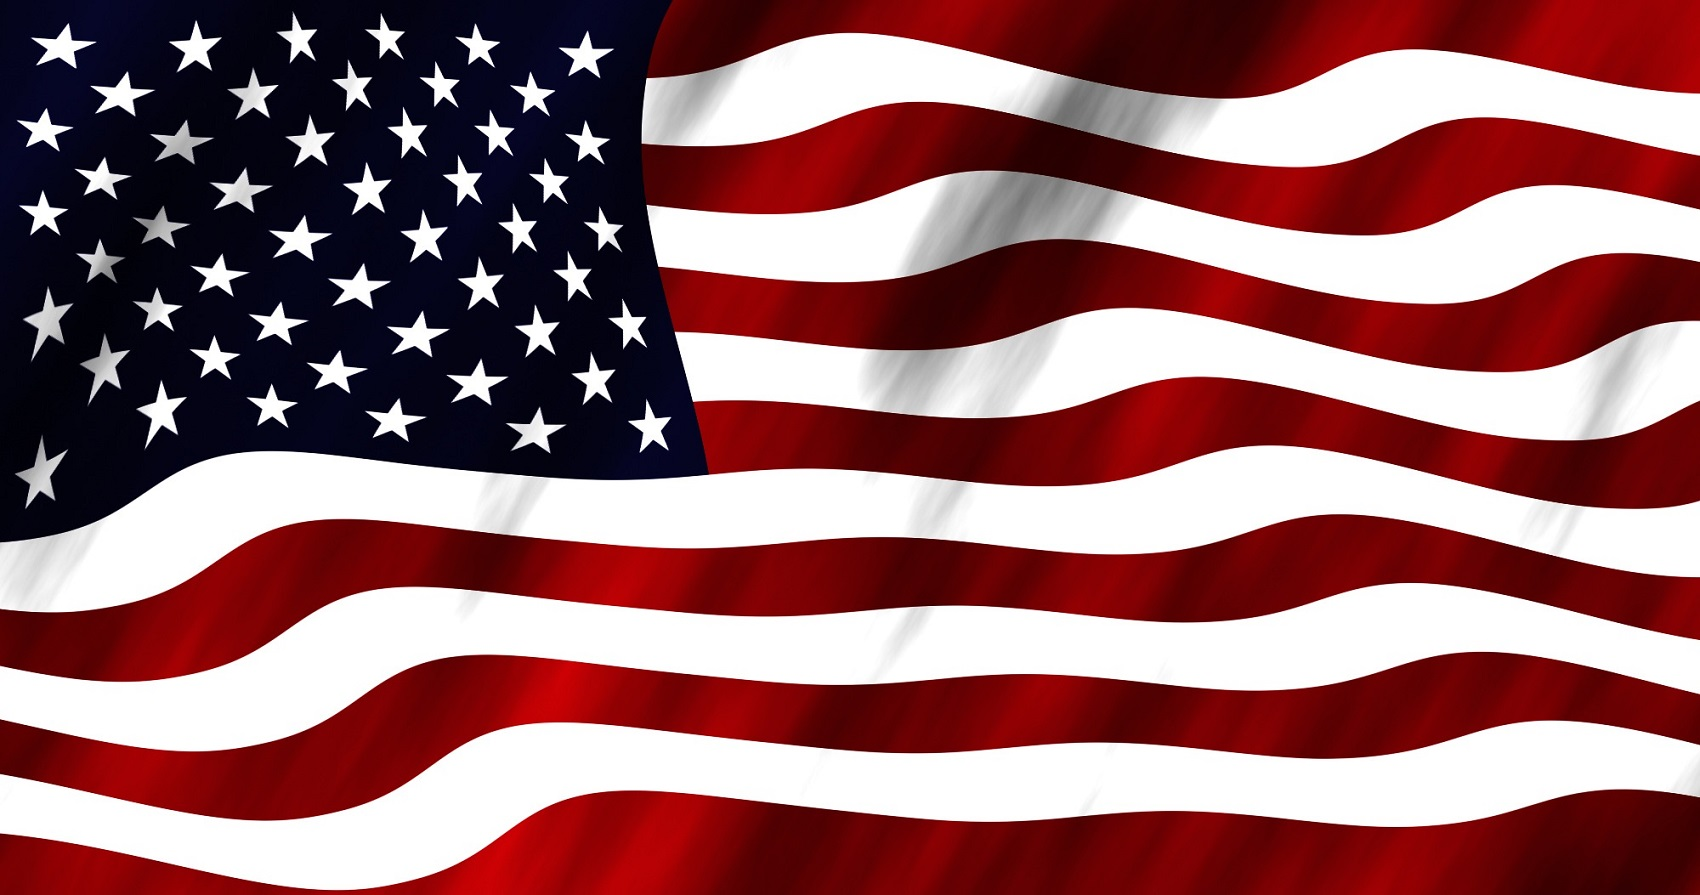 happy birthday american flag ; American-flag